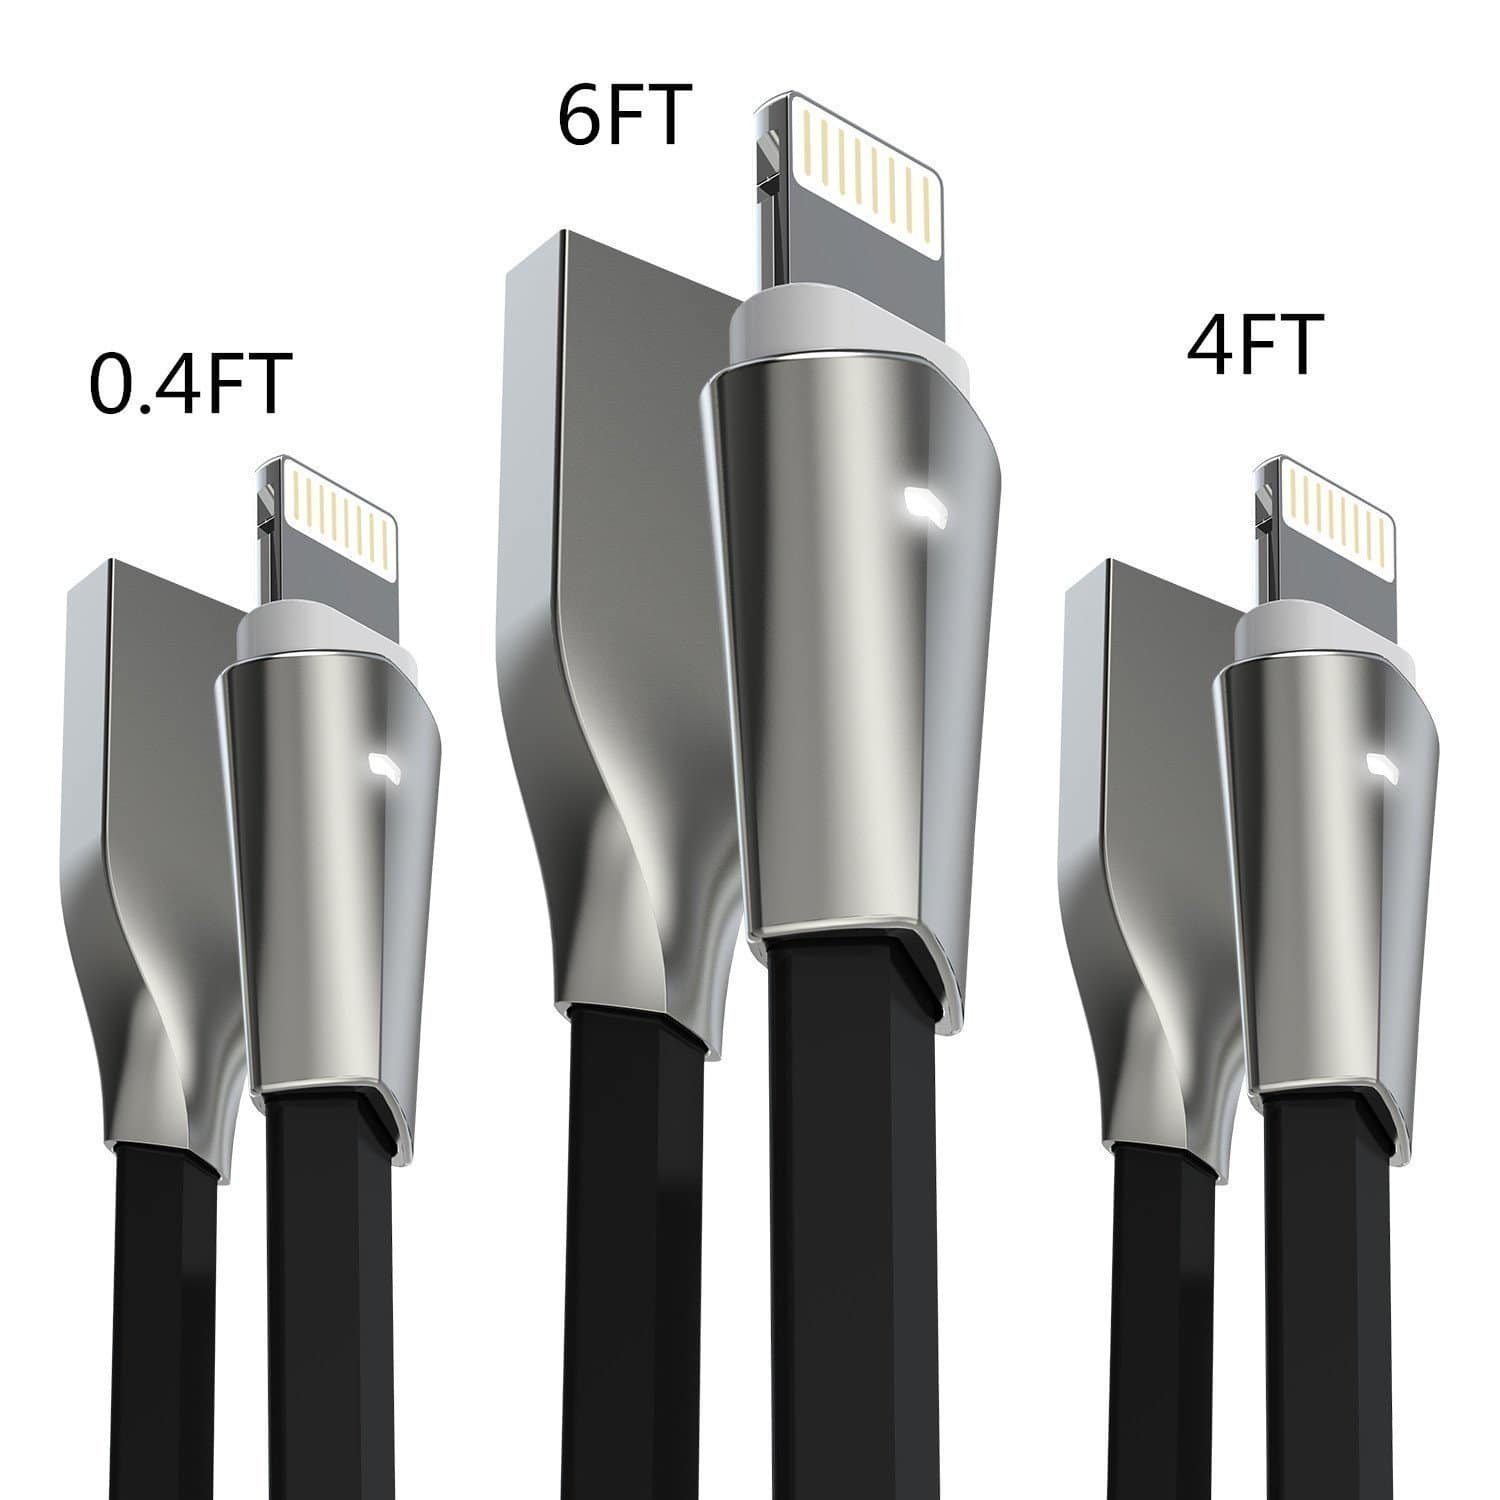 3-pk High speed lightning cable w/light Zinc alloyed usb connector iPhone/iPad/iPod for $6.60 AC from Amazon